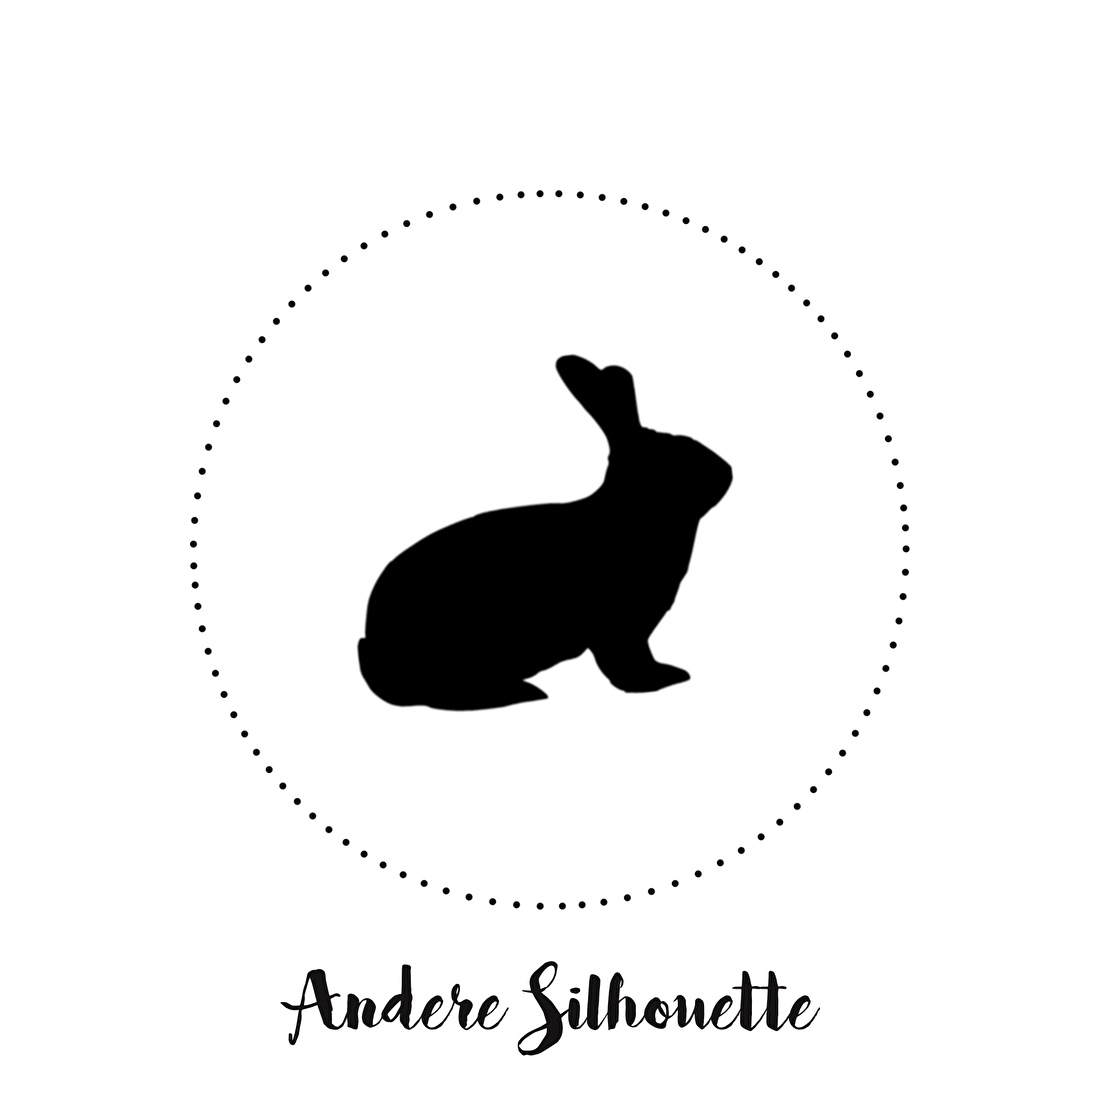 Andere silhouet